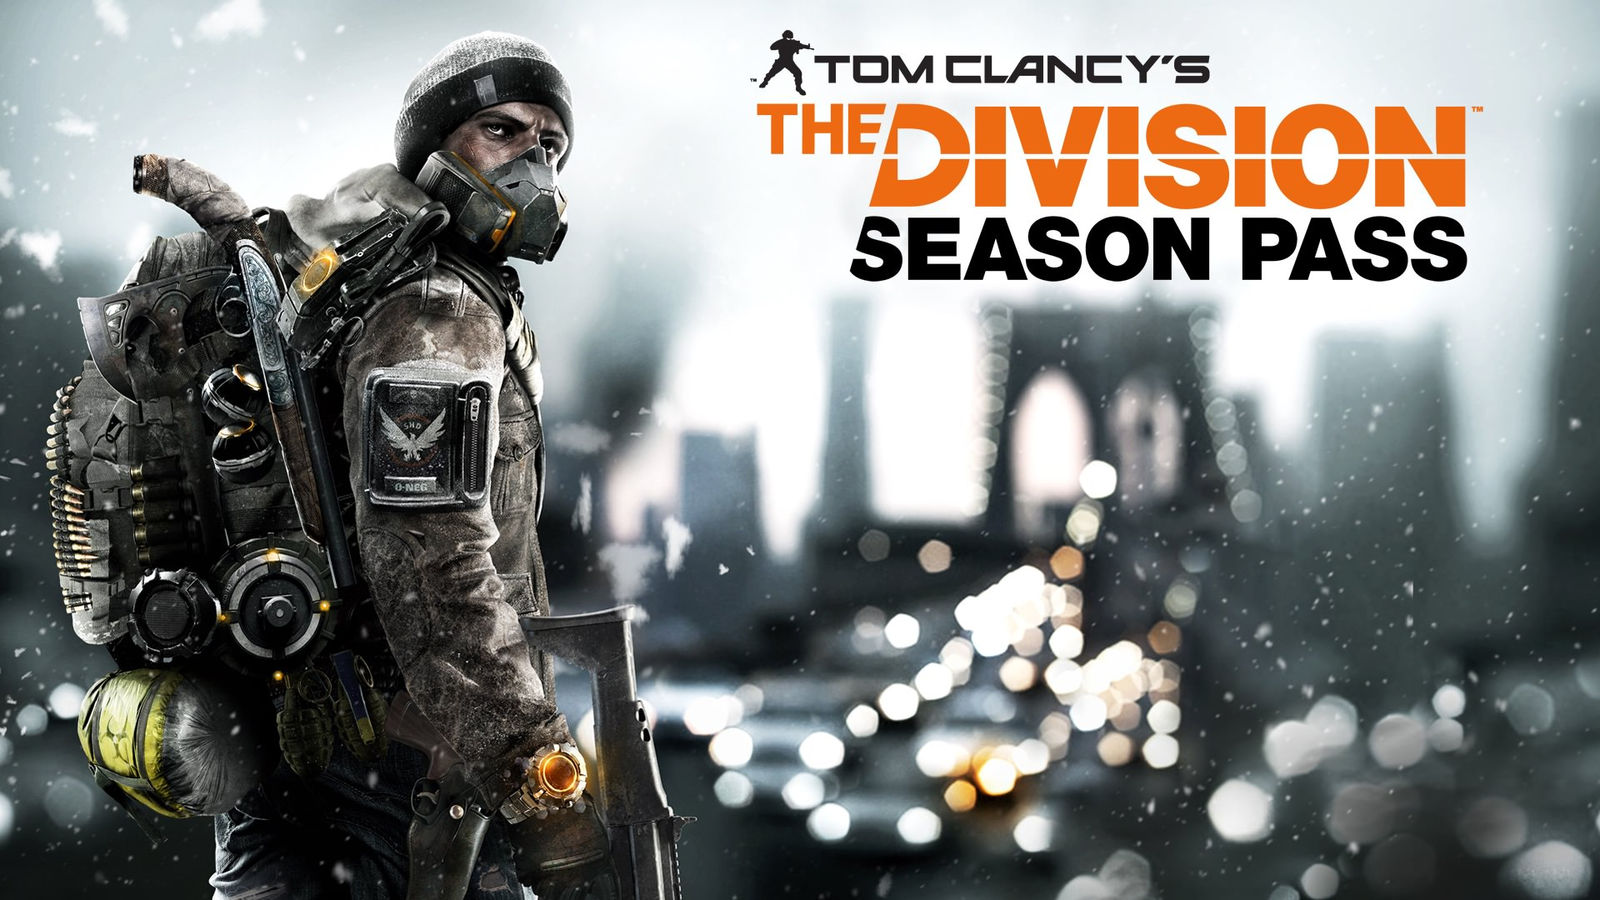 z Tom Clancy's The Division Season Pass (Uplay)